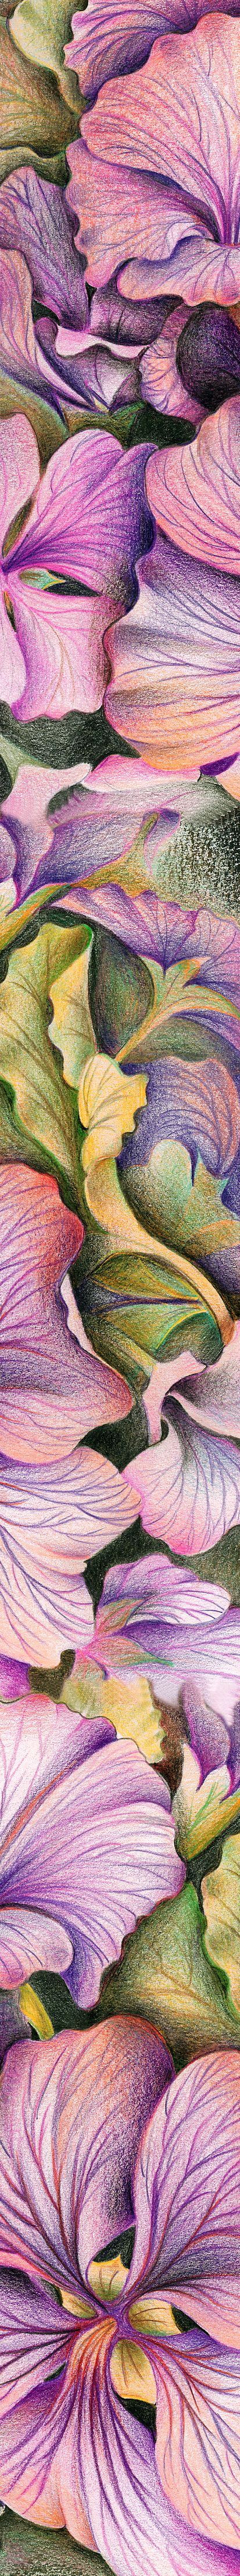 O'Keefe response. Flower close up using coloured pencils, showcasing blending techniques. Use photos that you have taken not images from the Internet.  DIANA ARIAS spanish artist